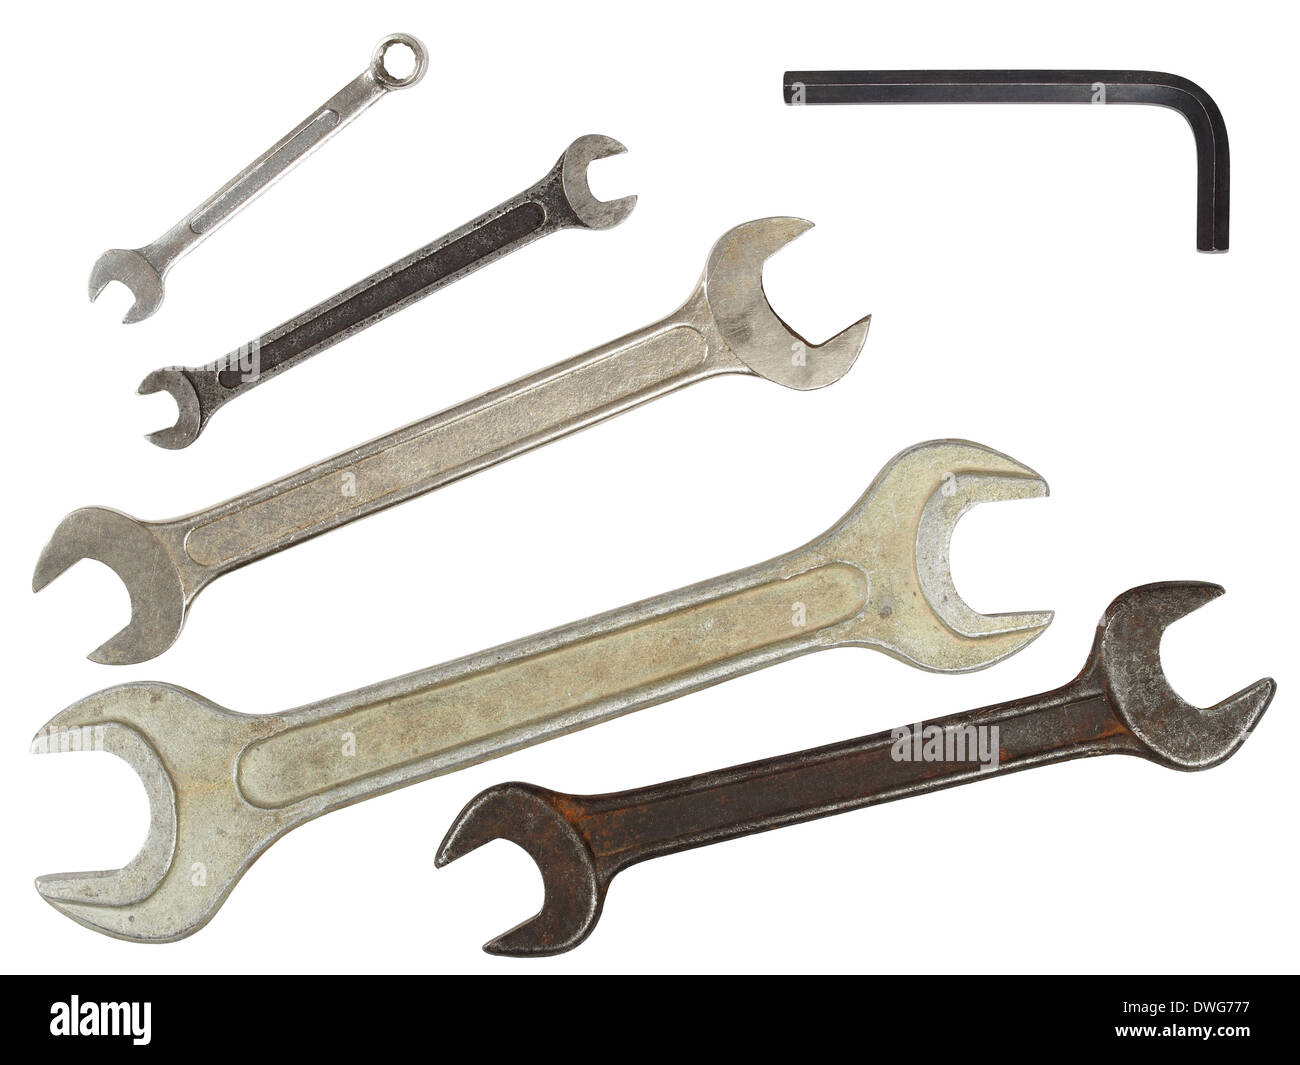 Set of used wrenches isolated on white, ready for cut and paste - Stock Image